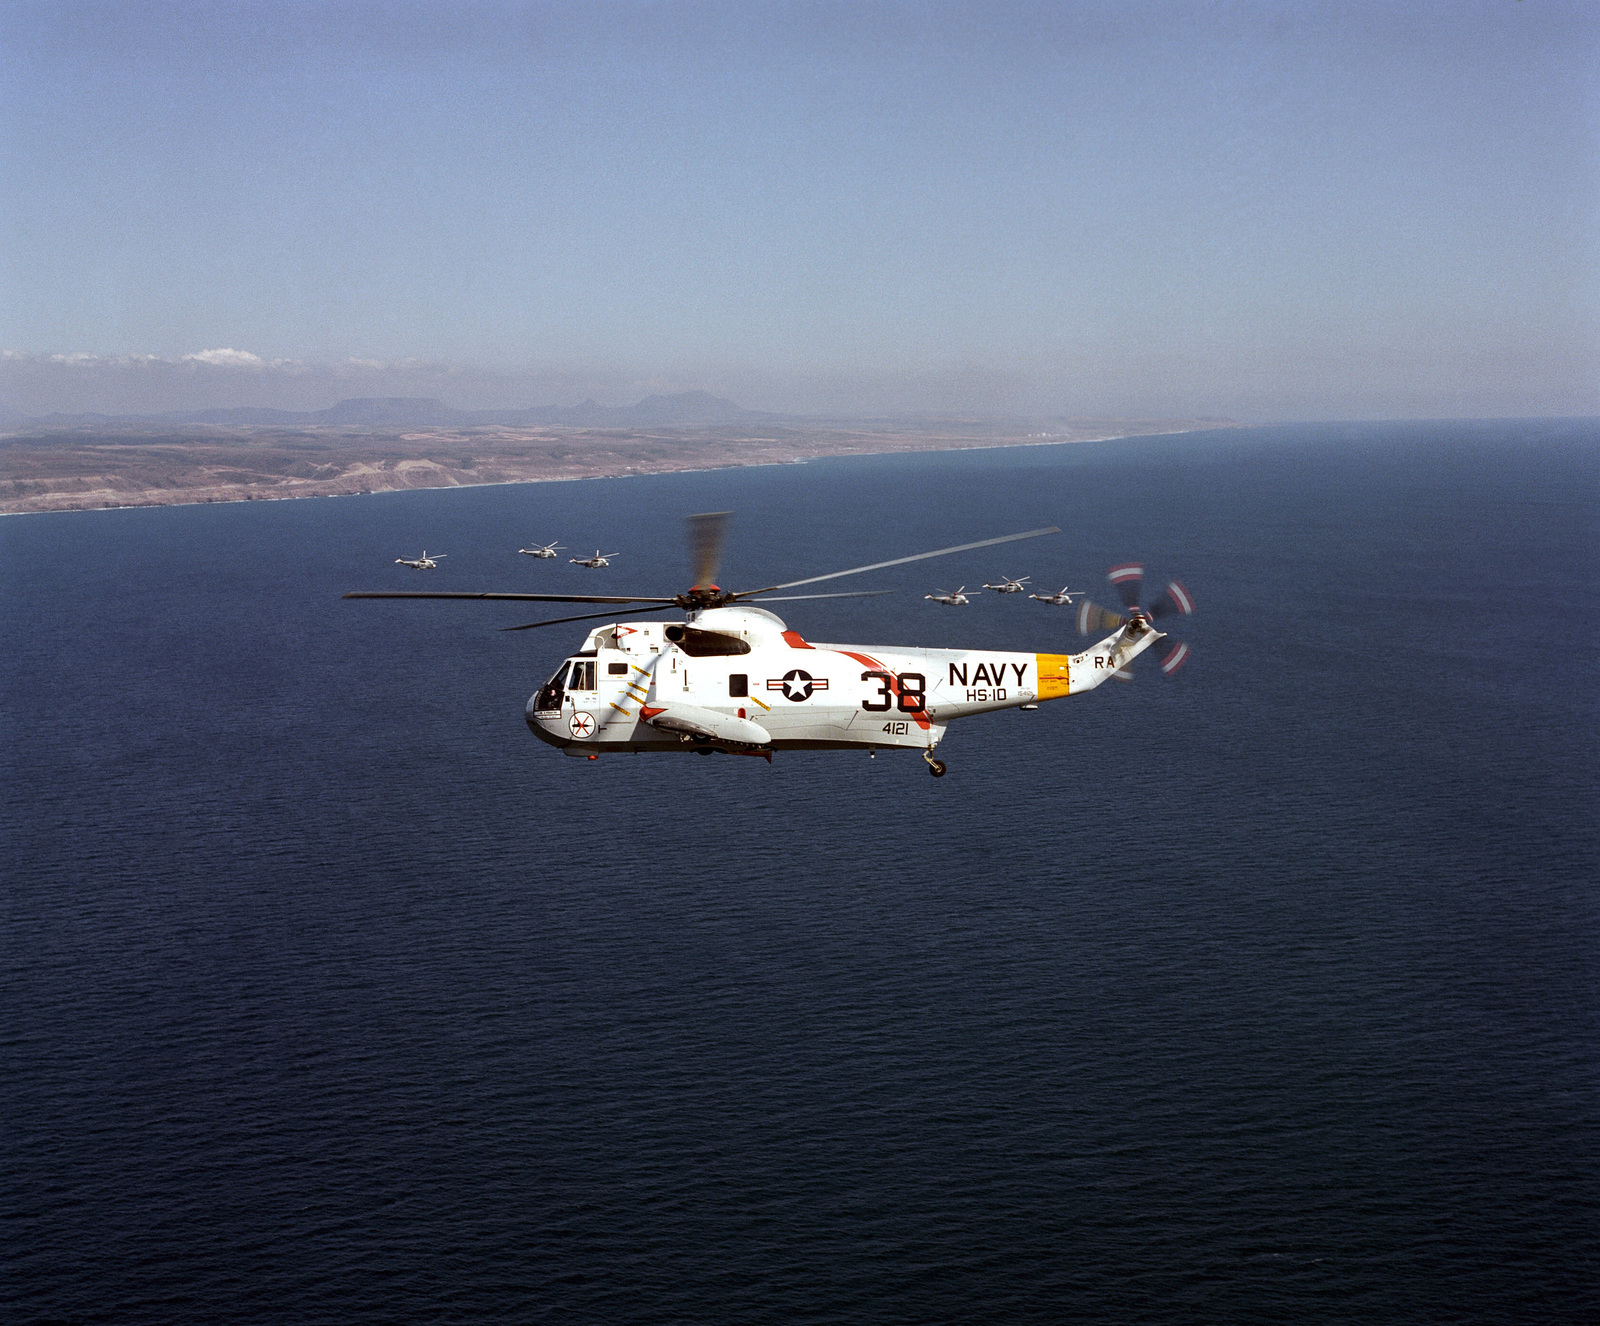 An air-to-air left side view of a Helicopter Anti-submarine Squadron 10 (HS-10) SH-3D Sea King helicopter as it operates off the coast of Southern California. Six other Sea King helicopters are in the background